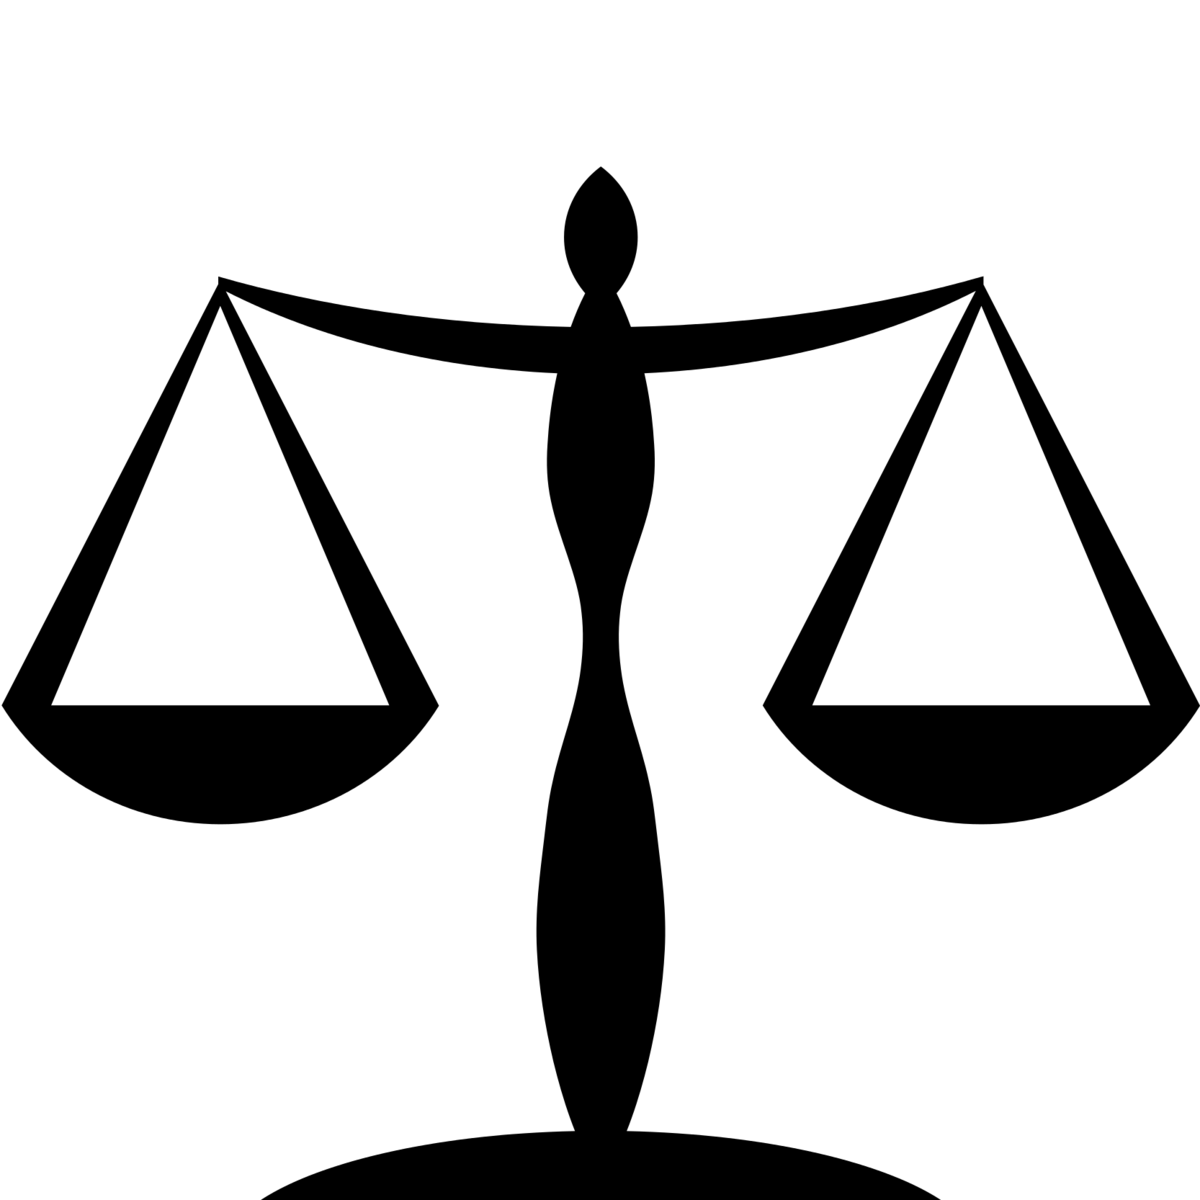 collection of law. Lawyer clipart vector